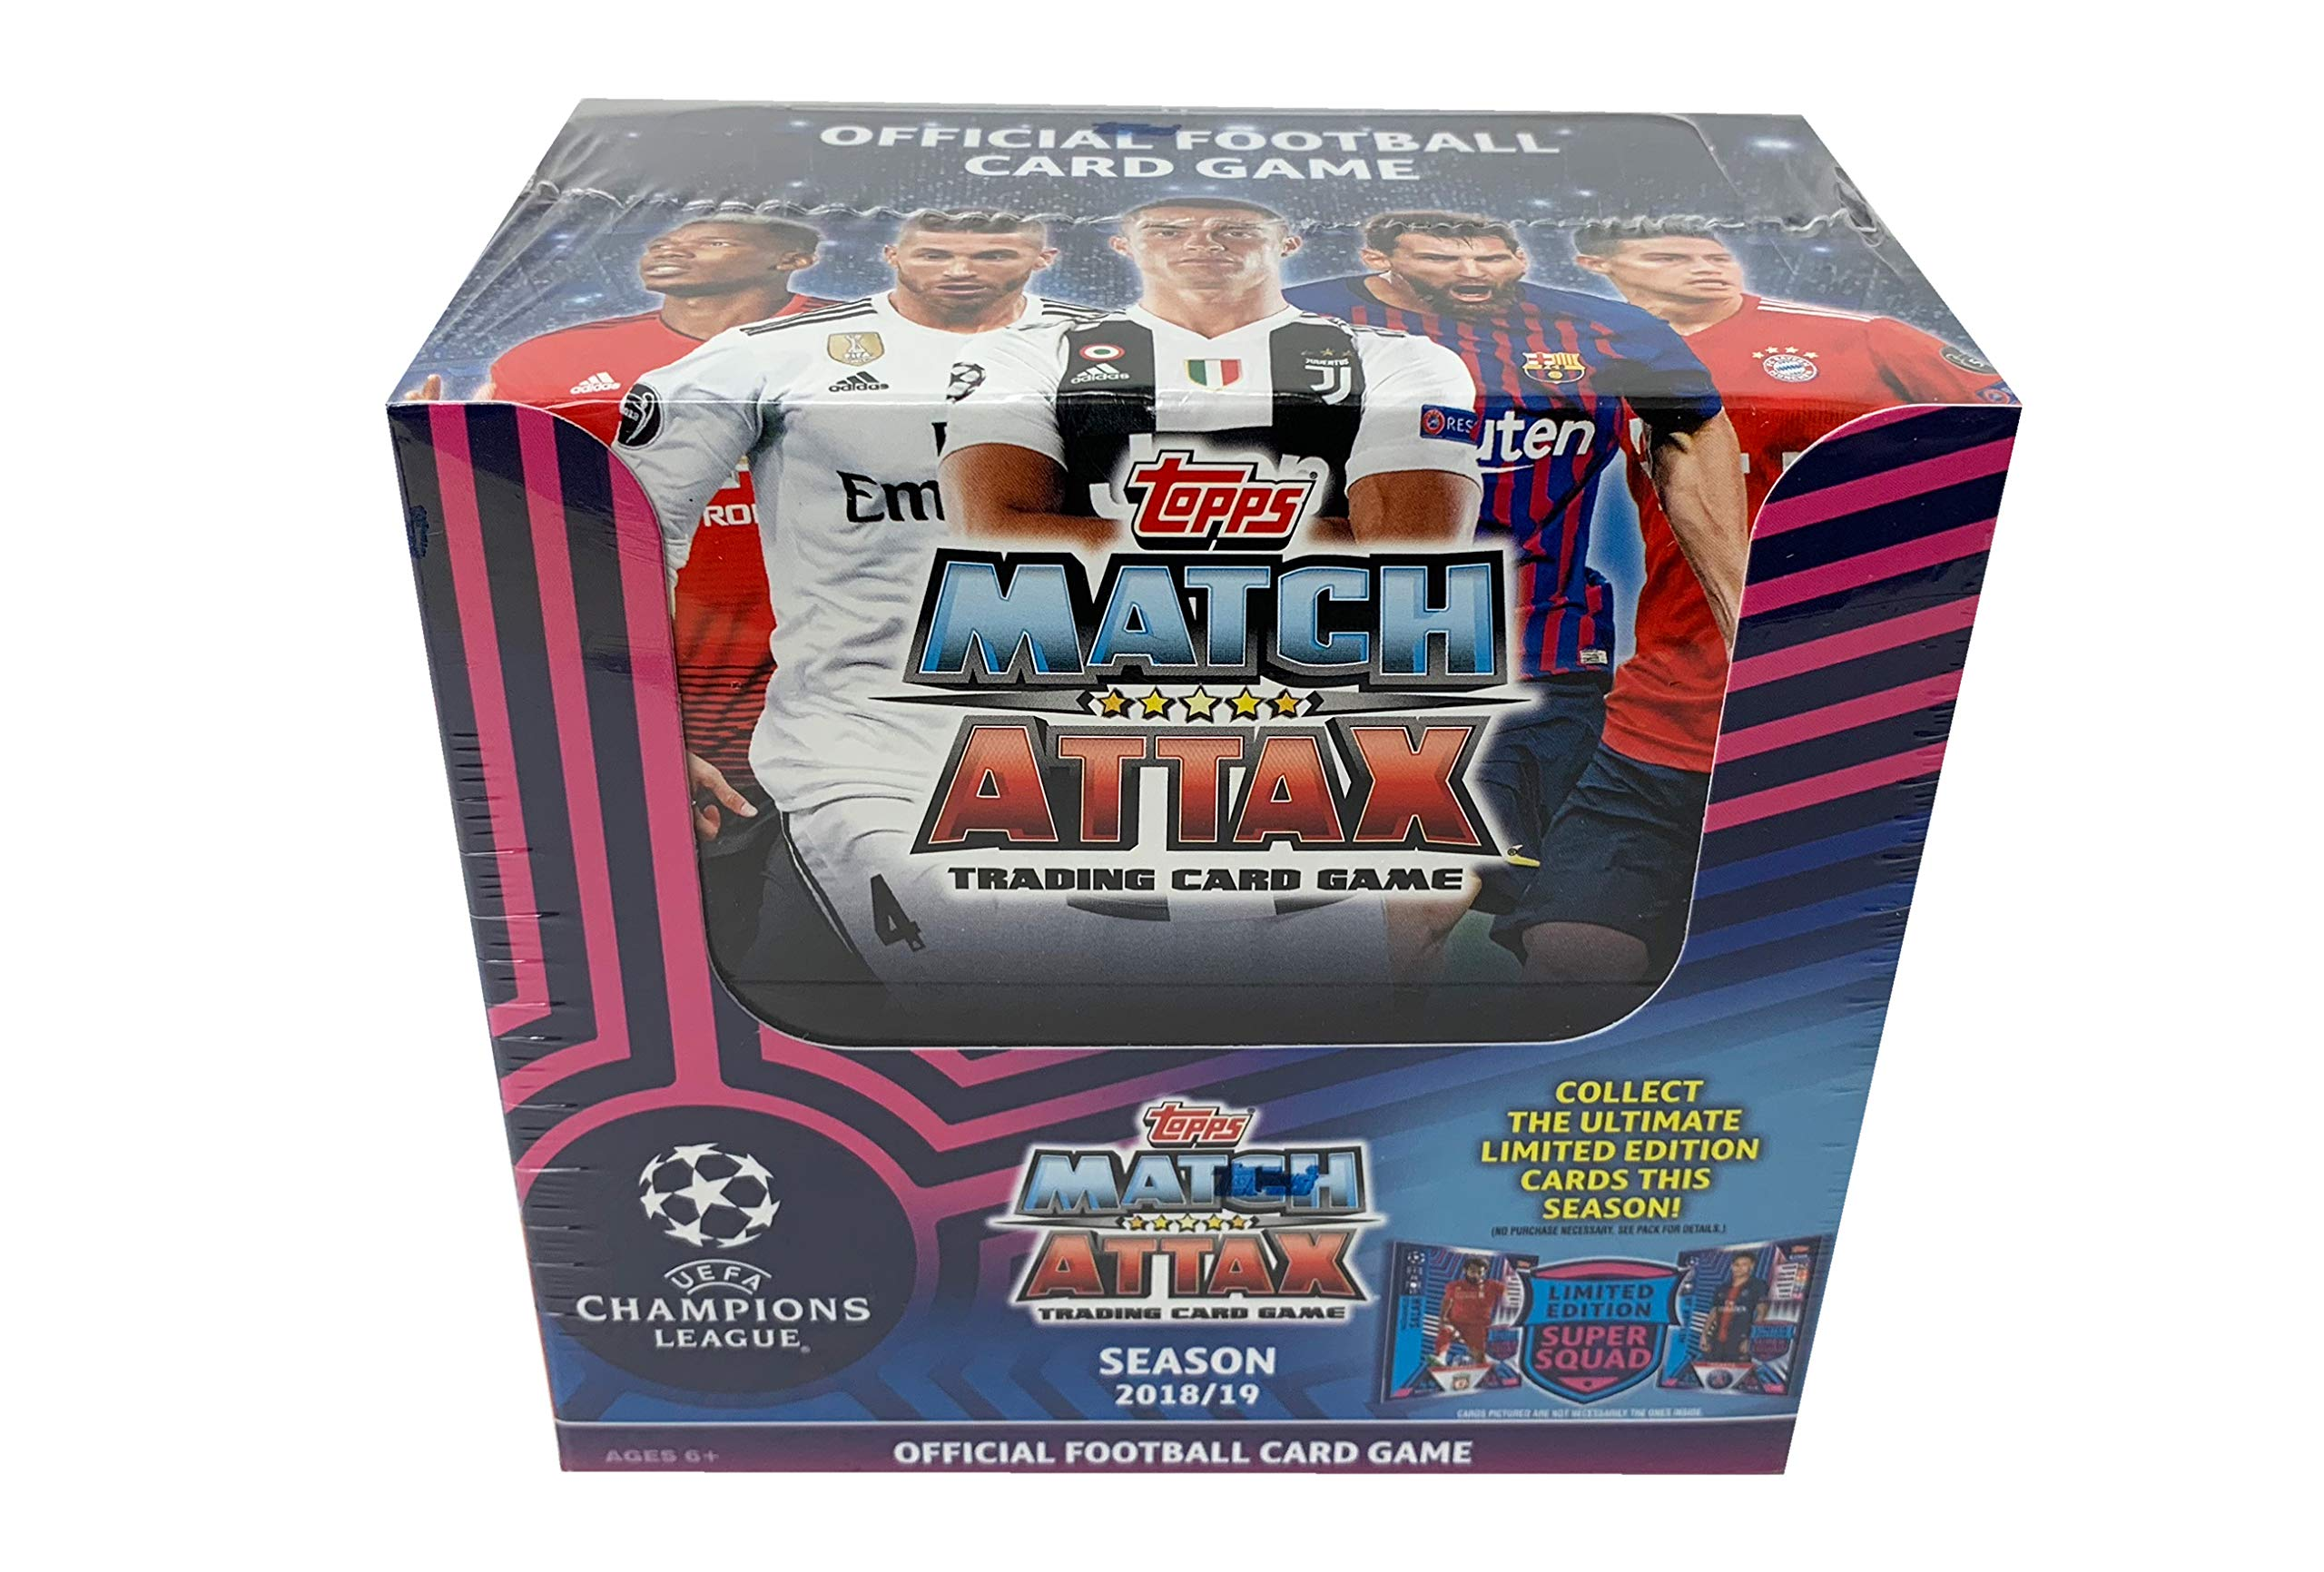 2018/19 Topps UEFA Champions League Topps Match Attax Trading Card Game,Starter Box (50 Packs, 6 Cards Per Pack)